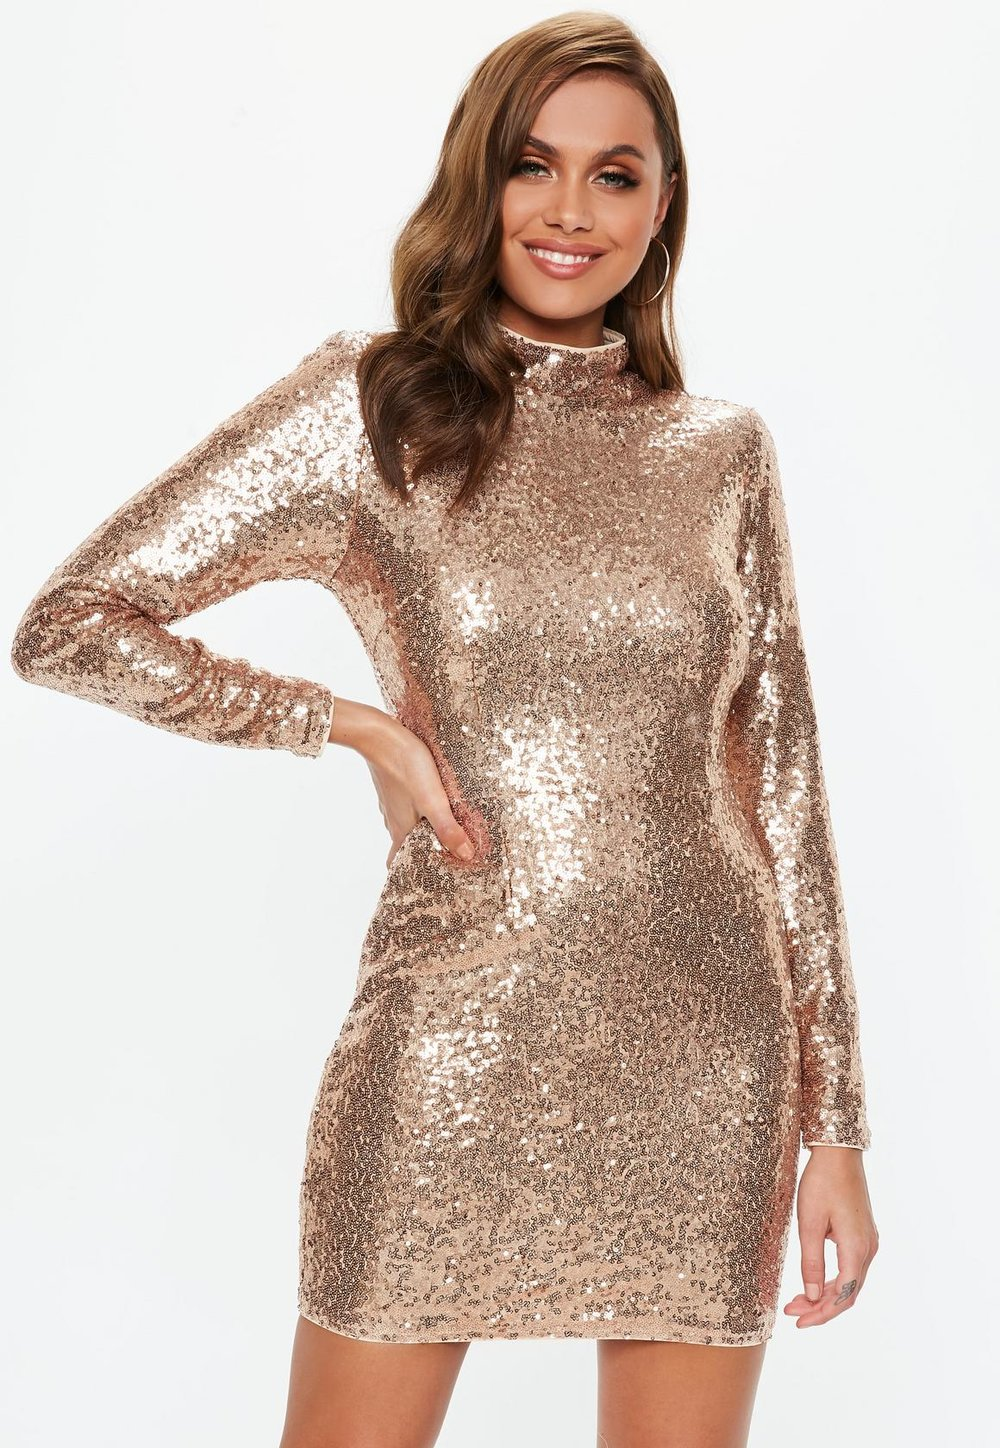 gold-high-neck-sequin-mini-dress.jpg